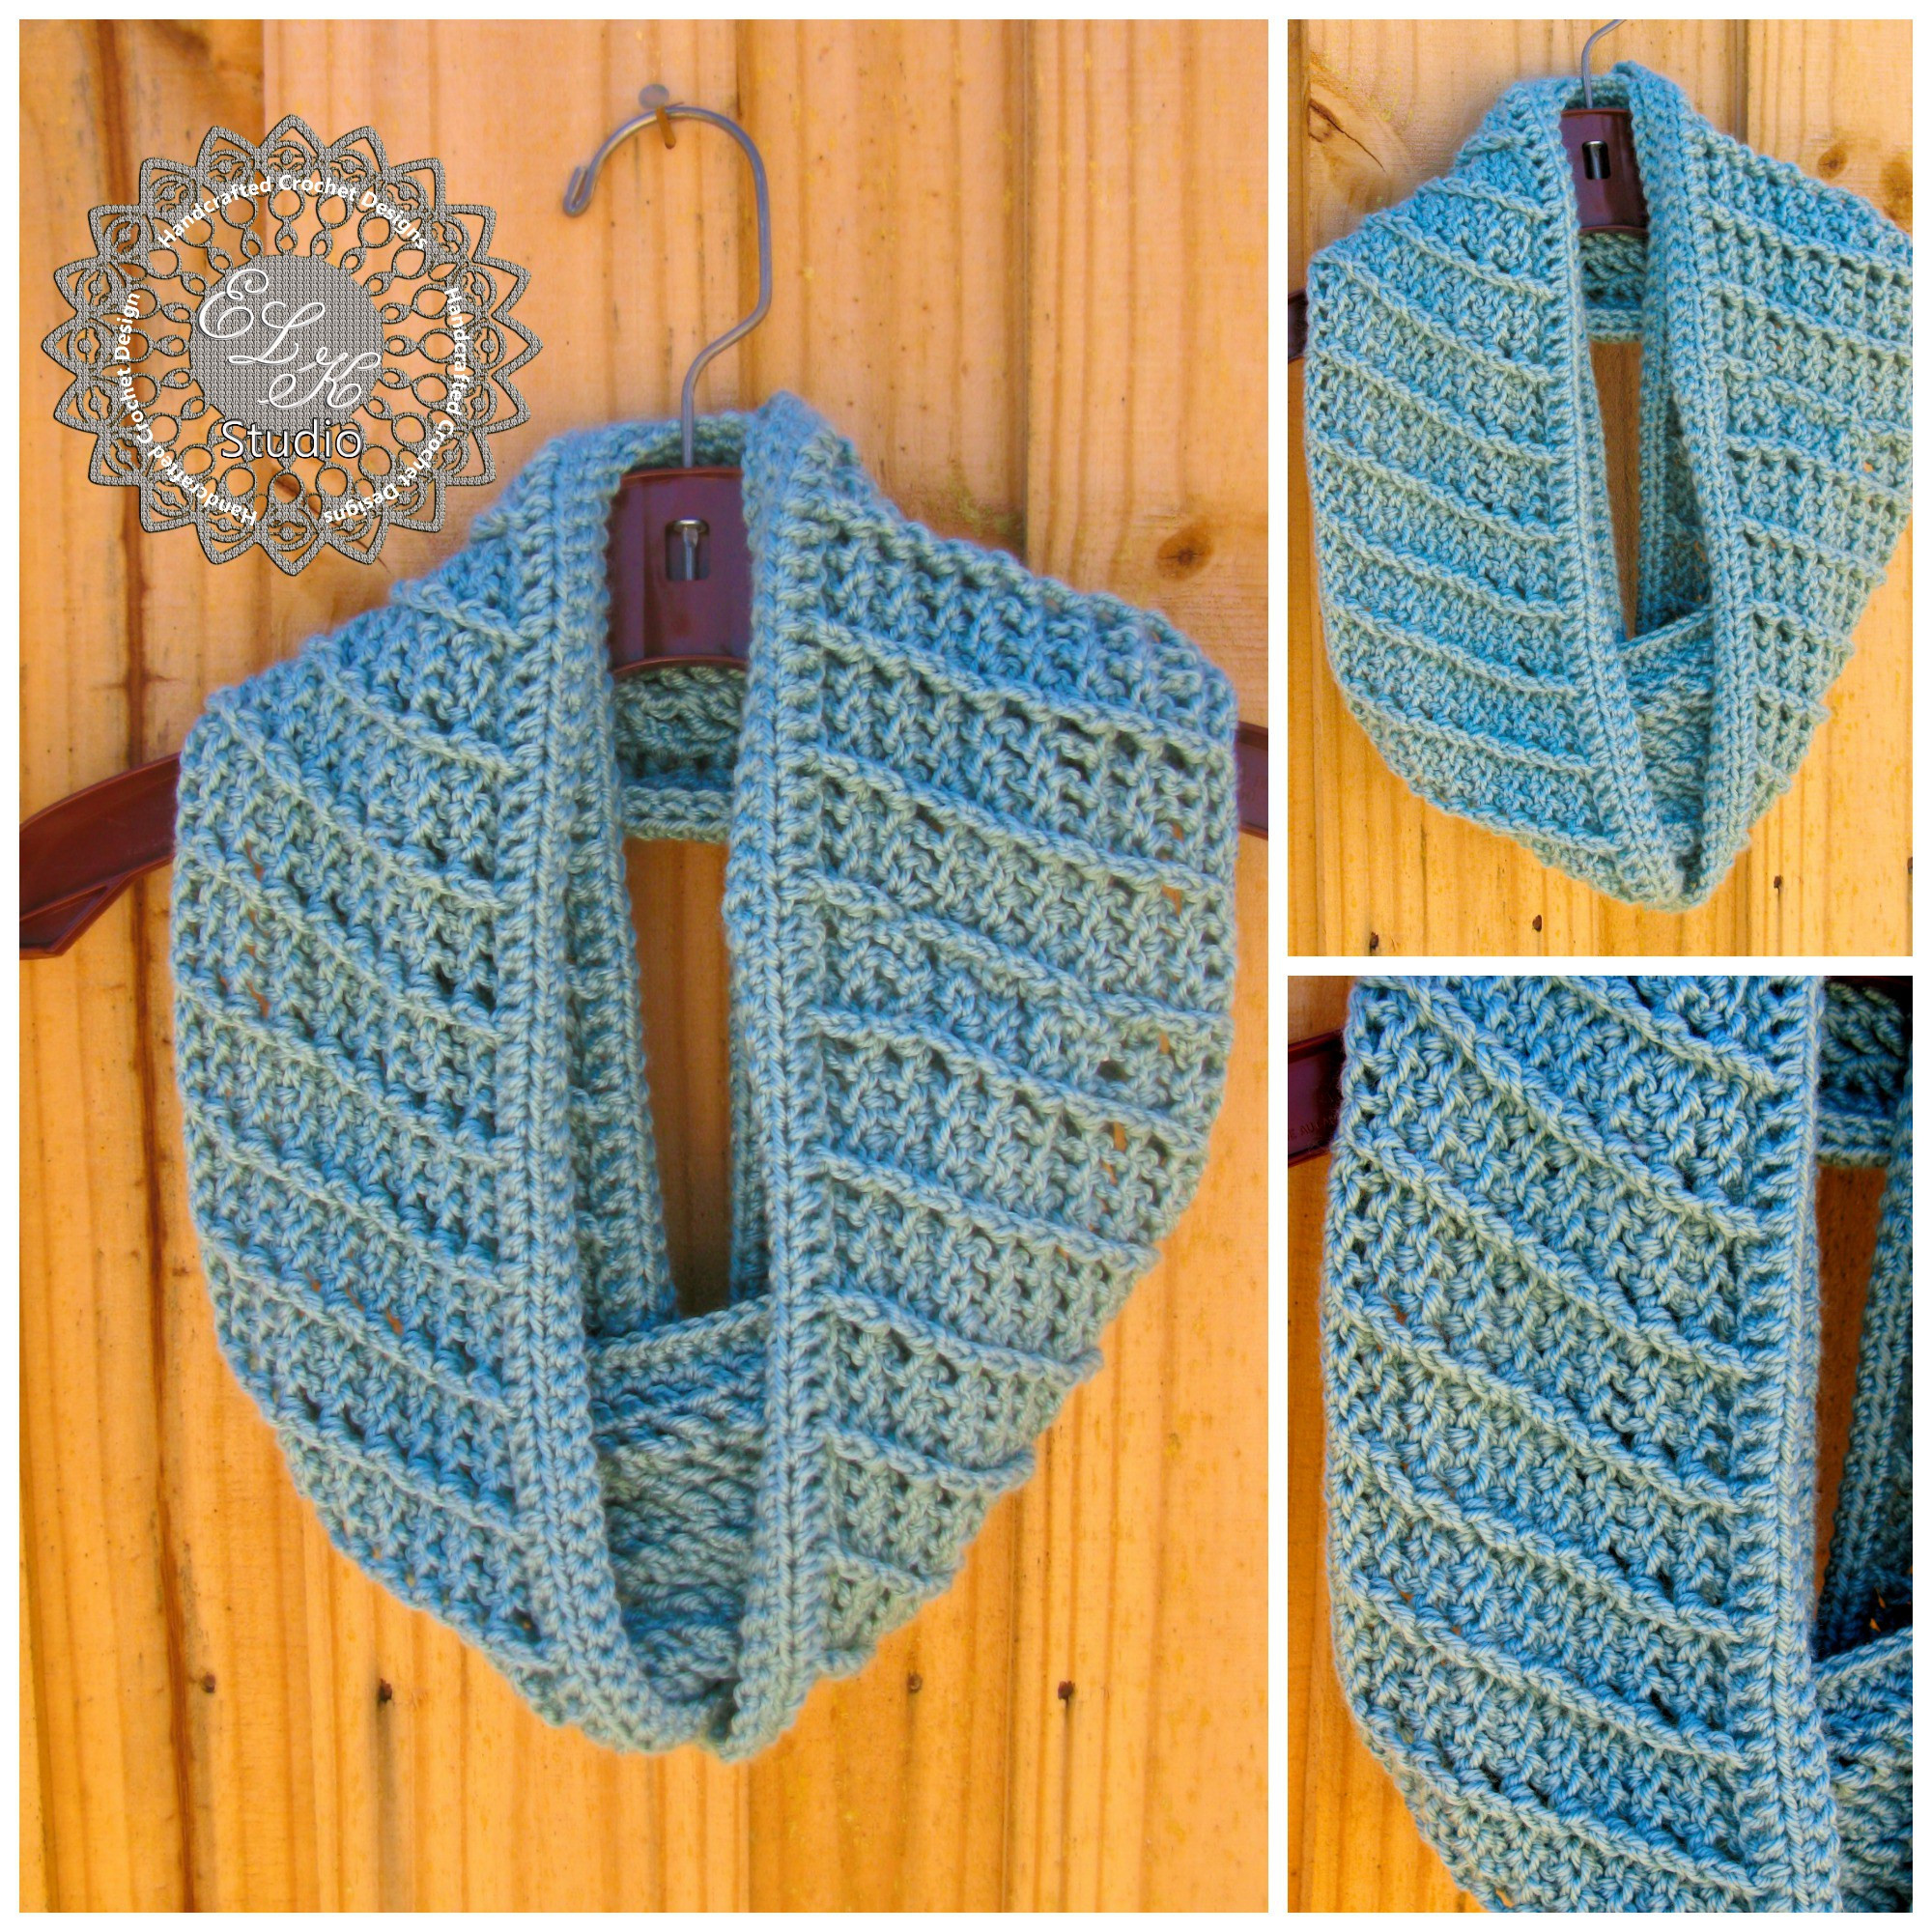 Crochet Scarves Patterns Elegant Country Appeal A Free Crochet Infinity Scarf Pattern Of Adorable 49 Models Crochet Scarves Patterns